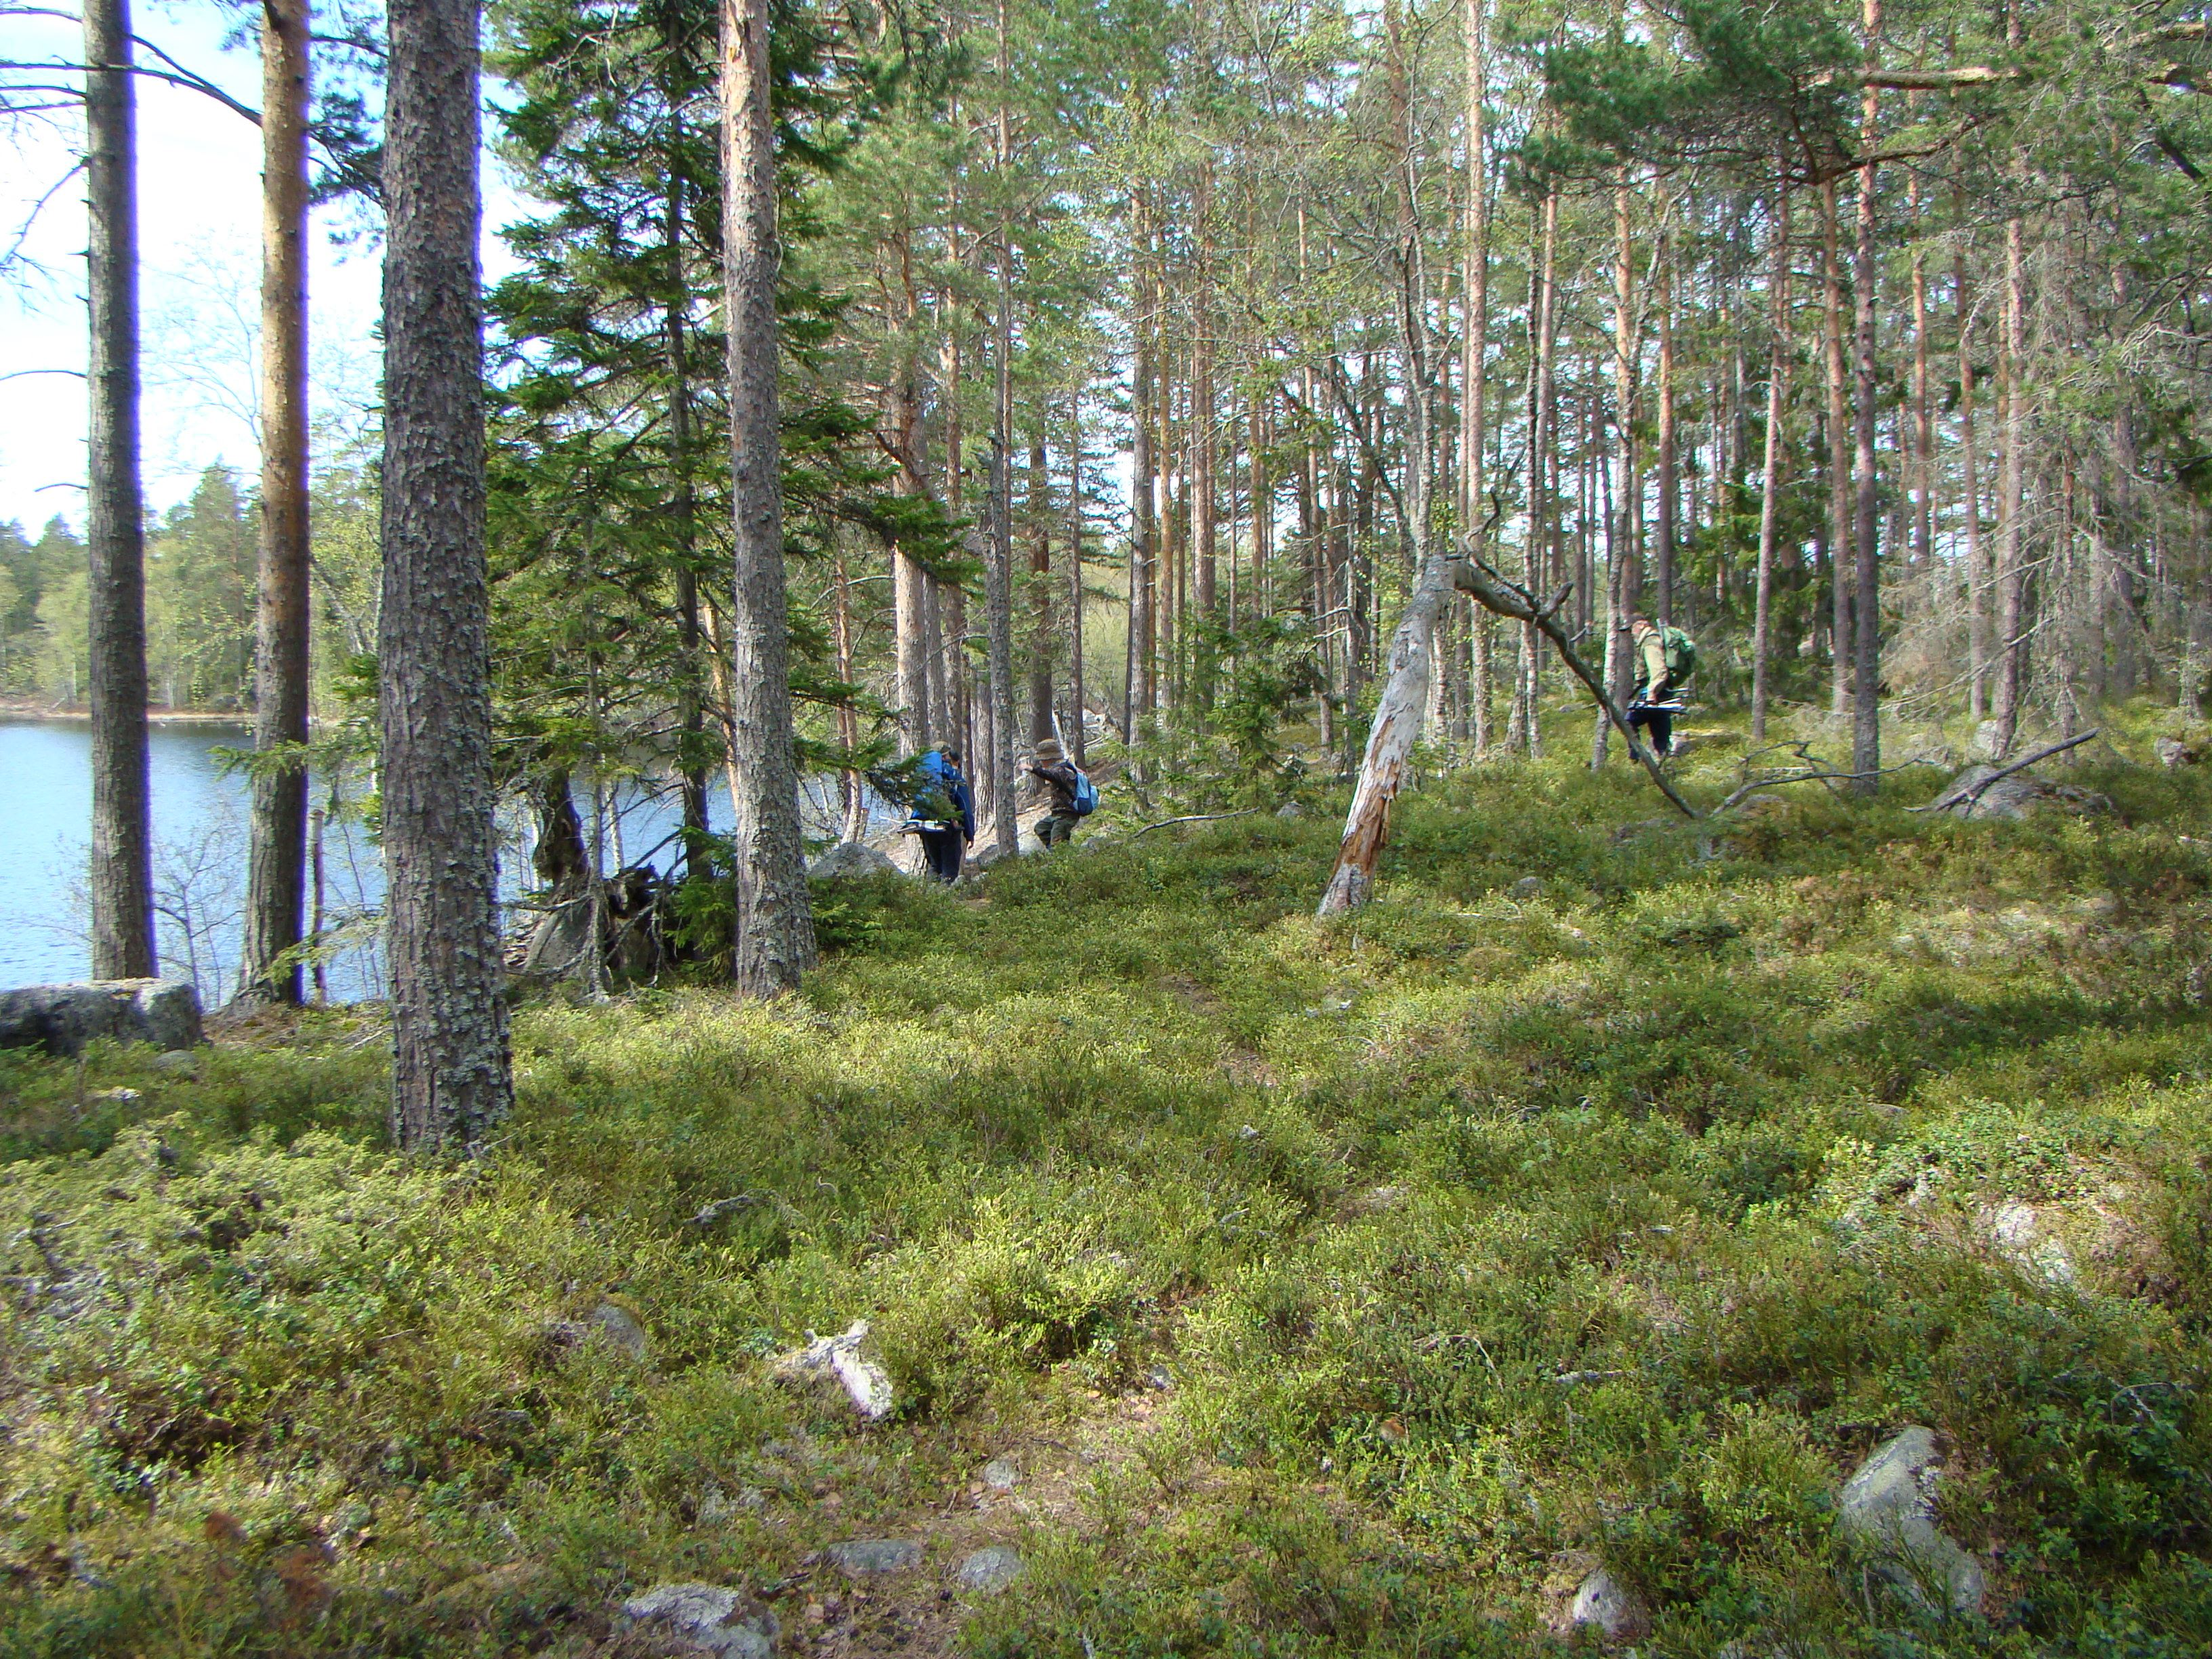 Hiking tour looking at the oldest pine in Sweden